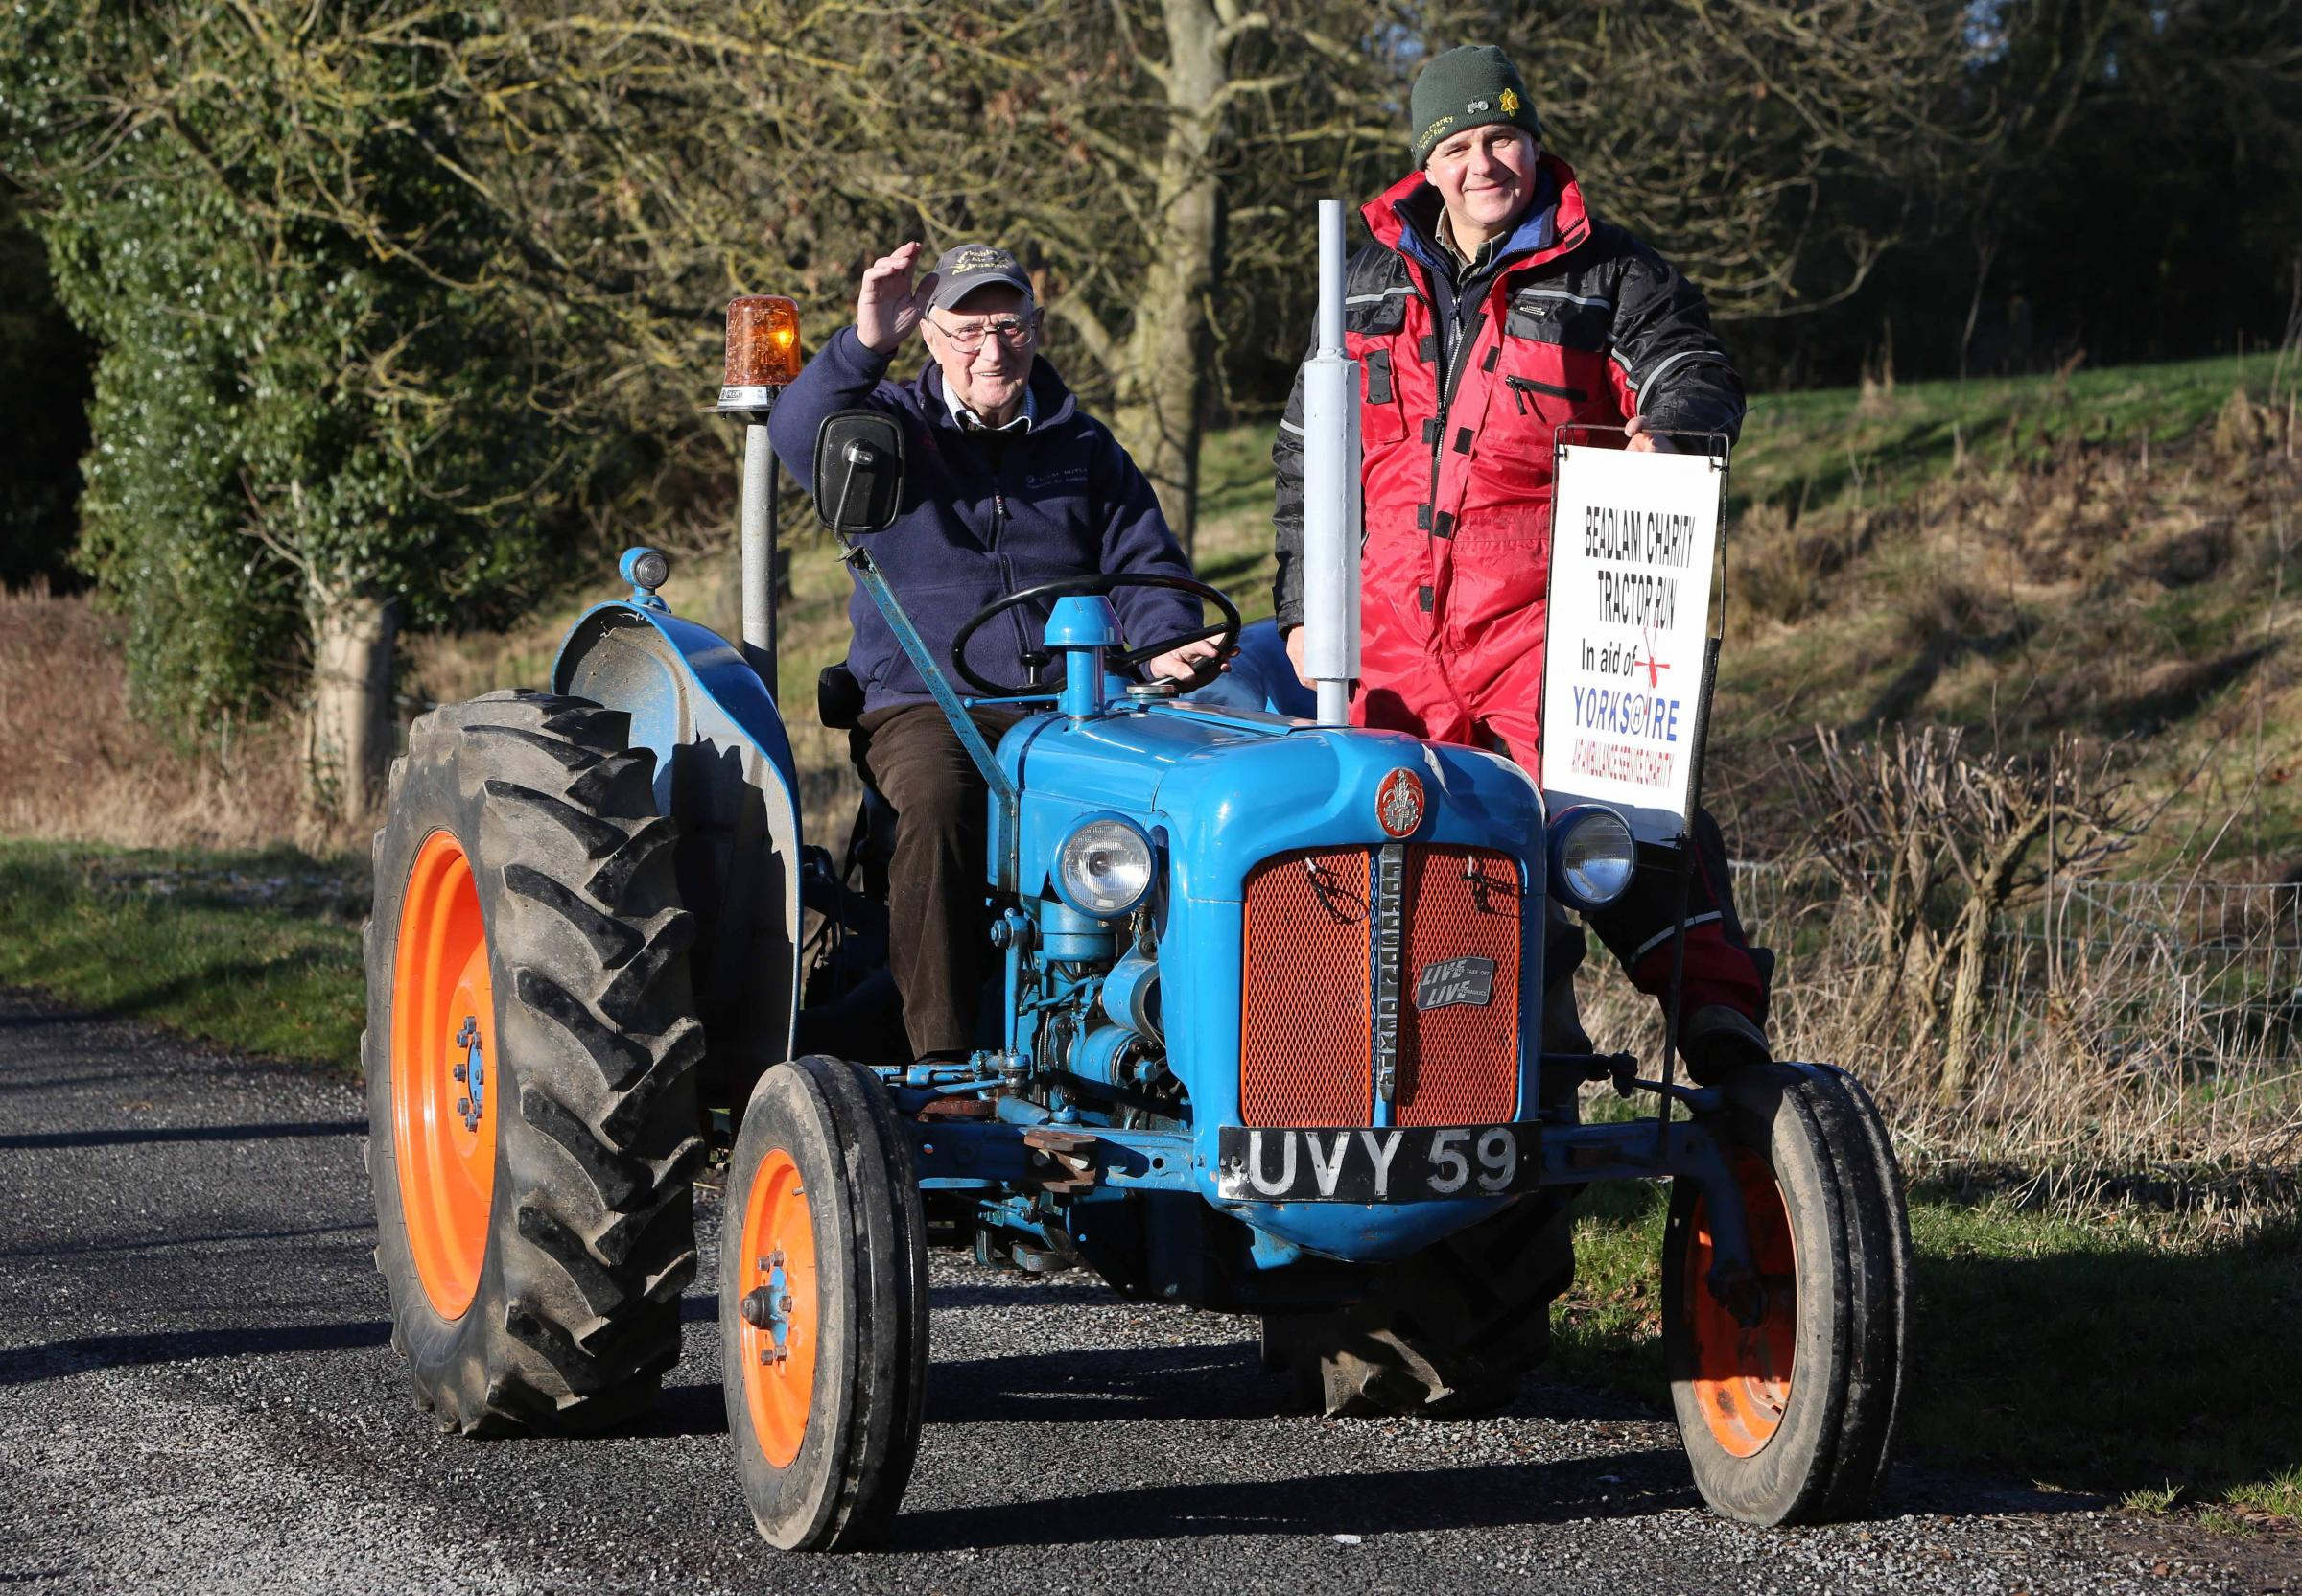 Bernard Simpson and his son Malcolm who organise the Beadlam Tractor Run, which has now raised more than £100,000 for Yorkshire Air Ambulance   Picture: Richard Doughty